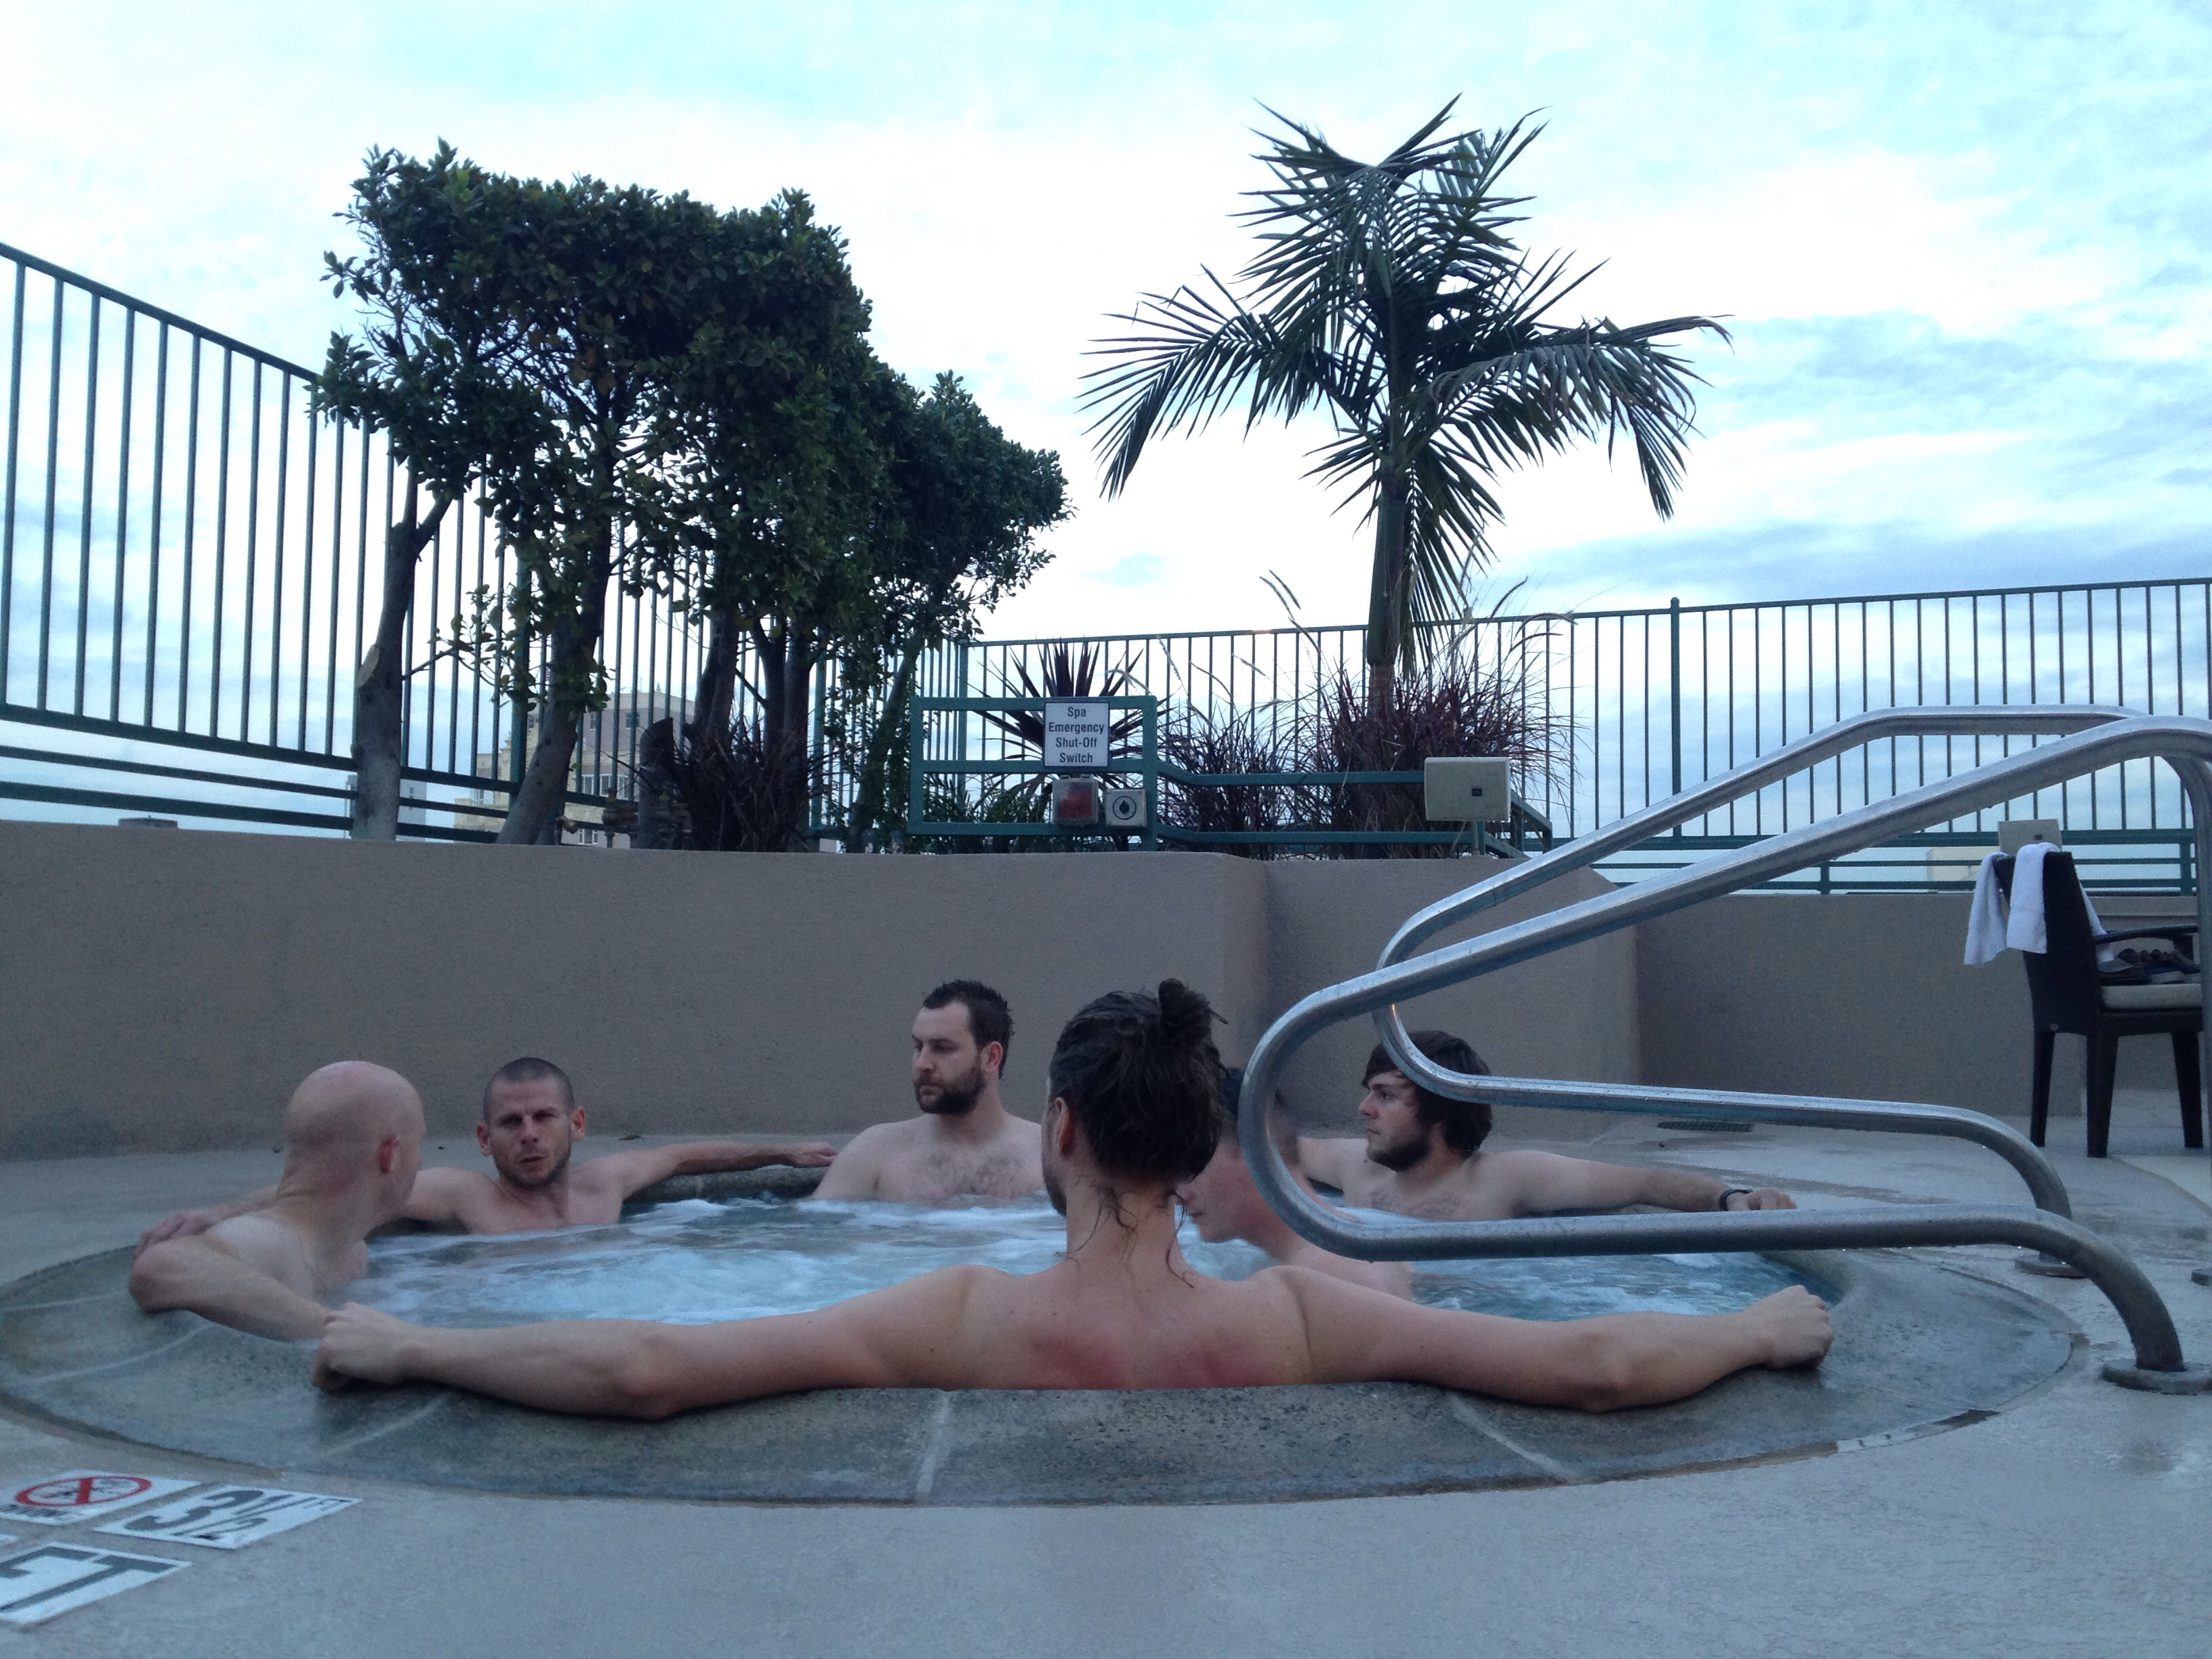 Hot Tub Meeting